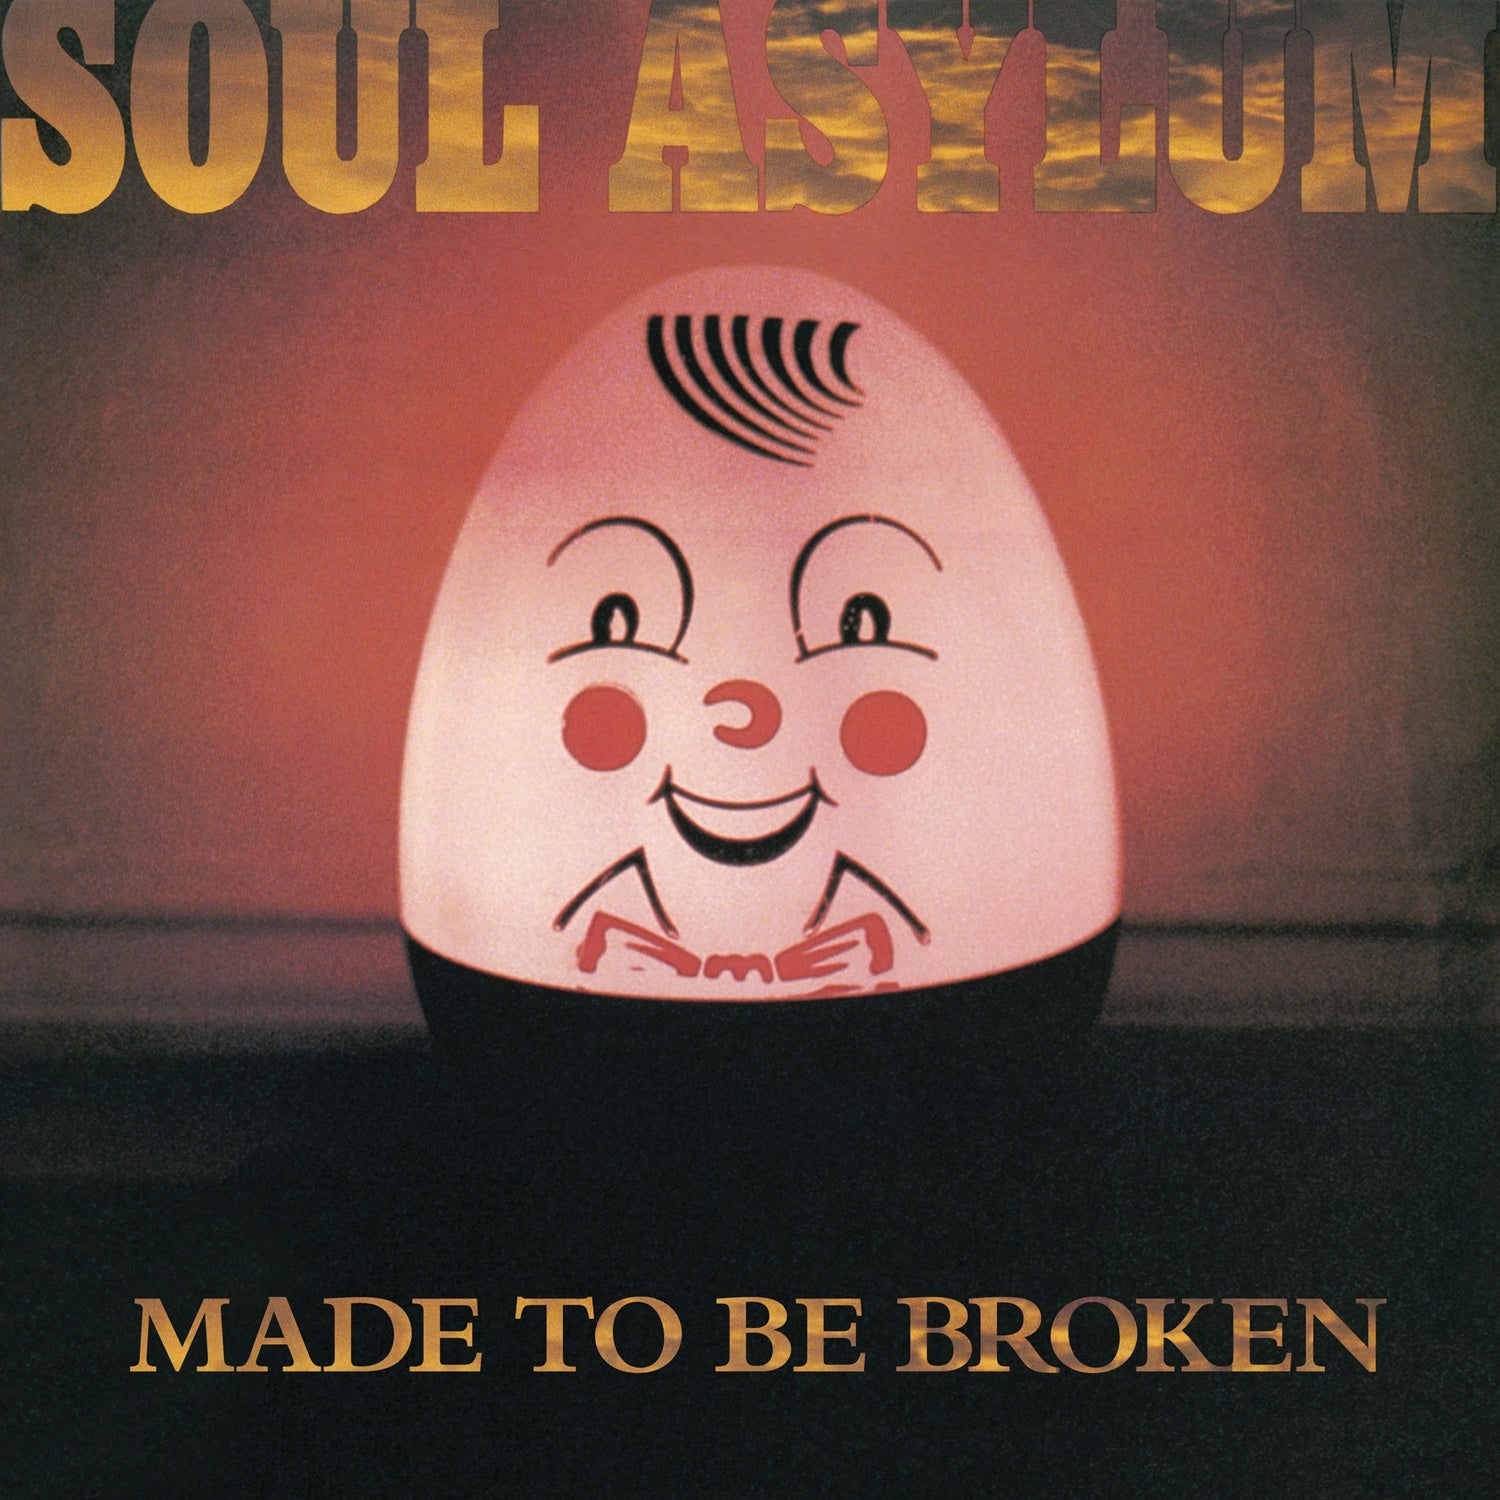 Soul Asylum ‎– Made To Be Broken (1986) - New Vinyl Lp 2019 Omnivore Reissue - Alt / Garage Rock / Grunge